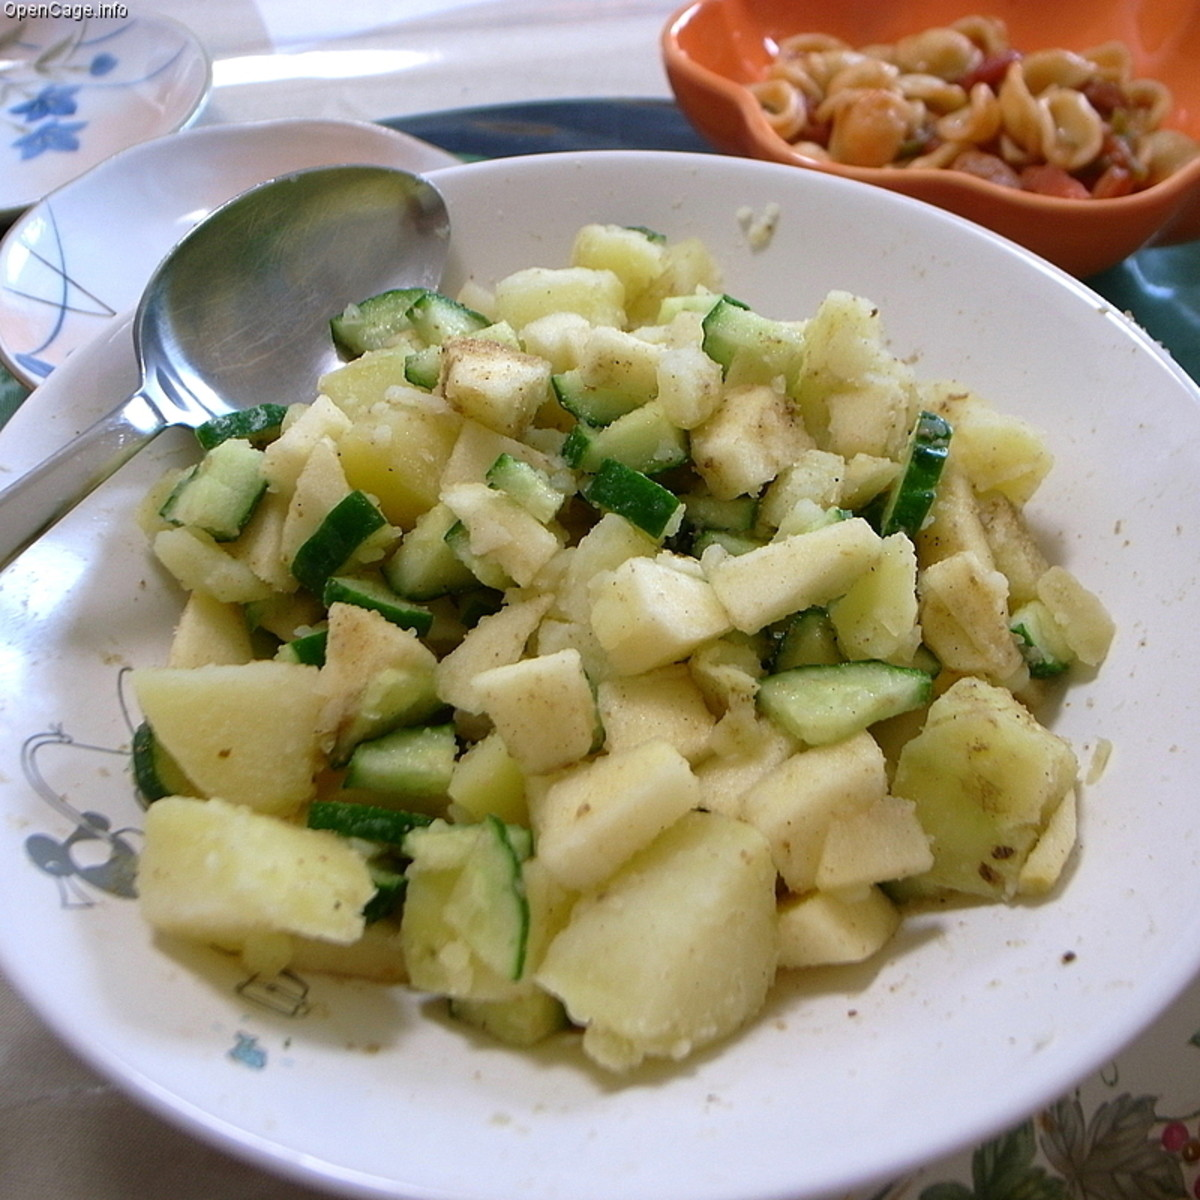 Cucumber Salad Recipe With Olive Oil and Lemon Juice